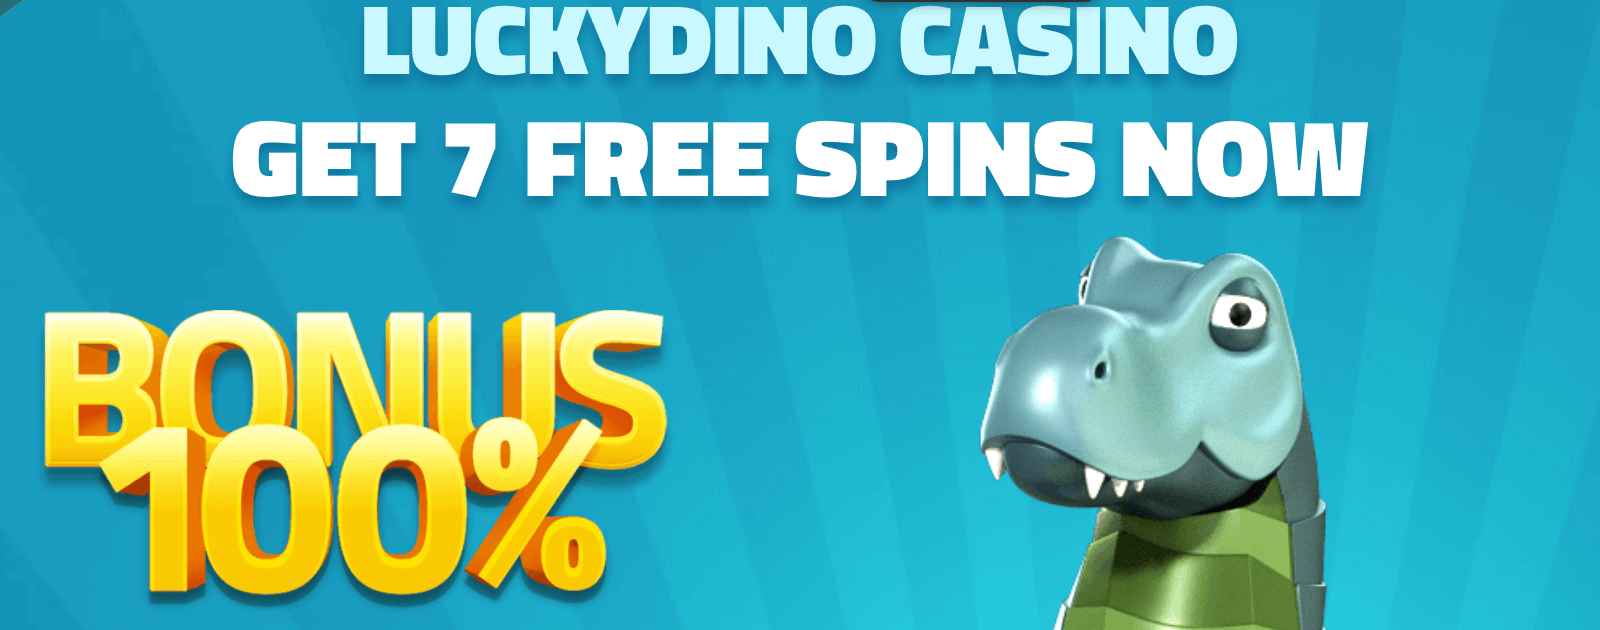 ★ Get a 100% First Deposit Bonus up to C$200 + 50 Free Spins on Copy Cats at LuckyDino Casino